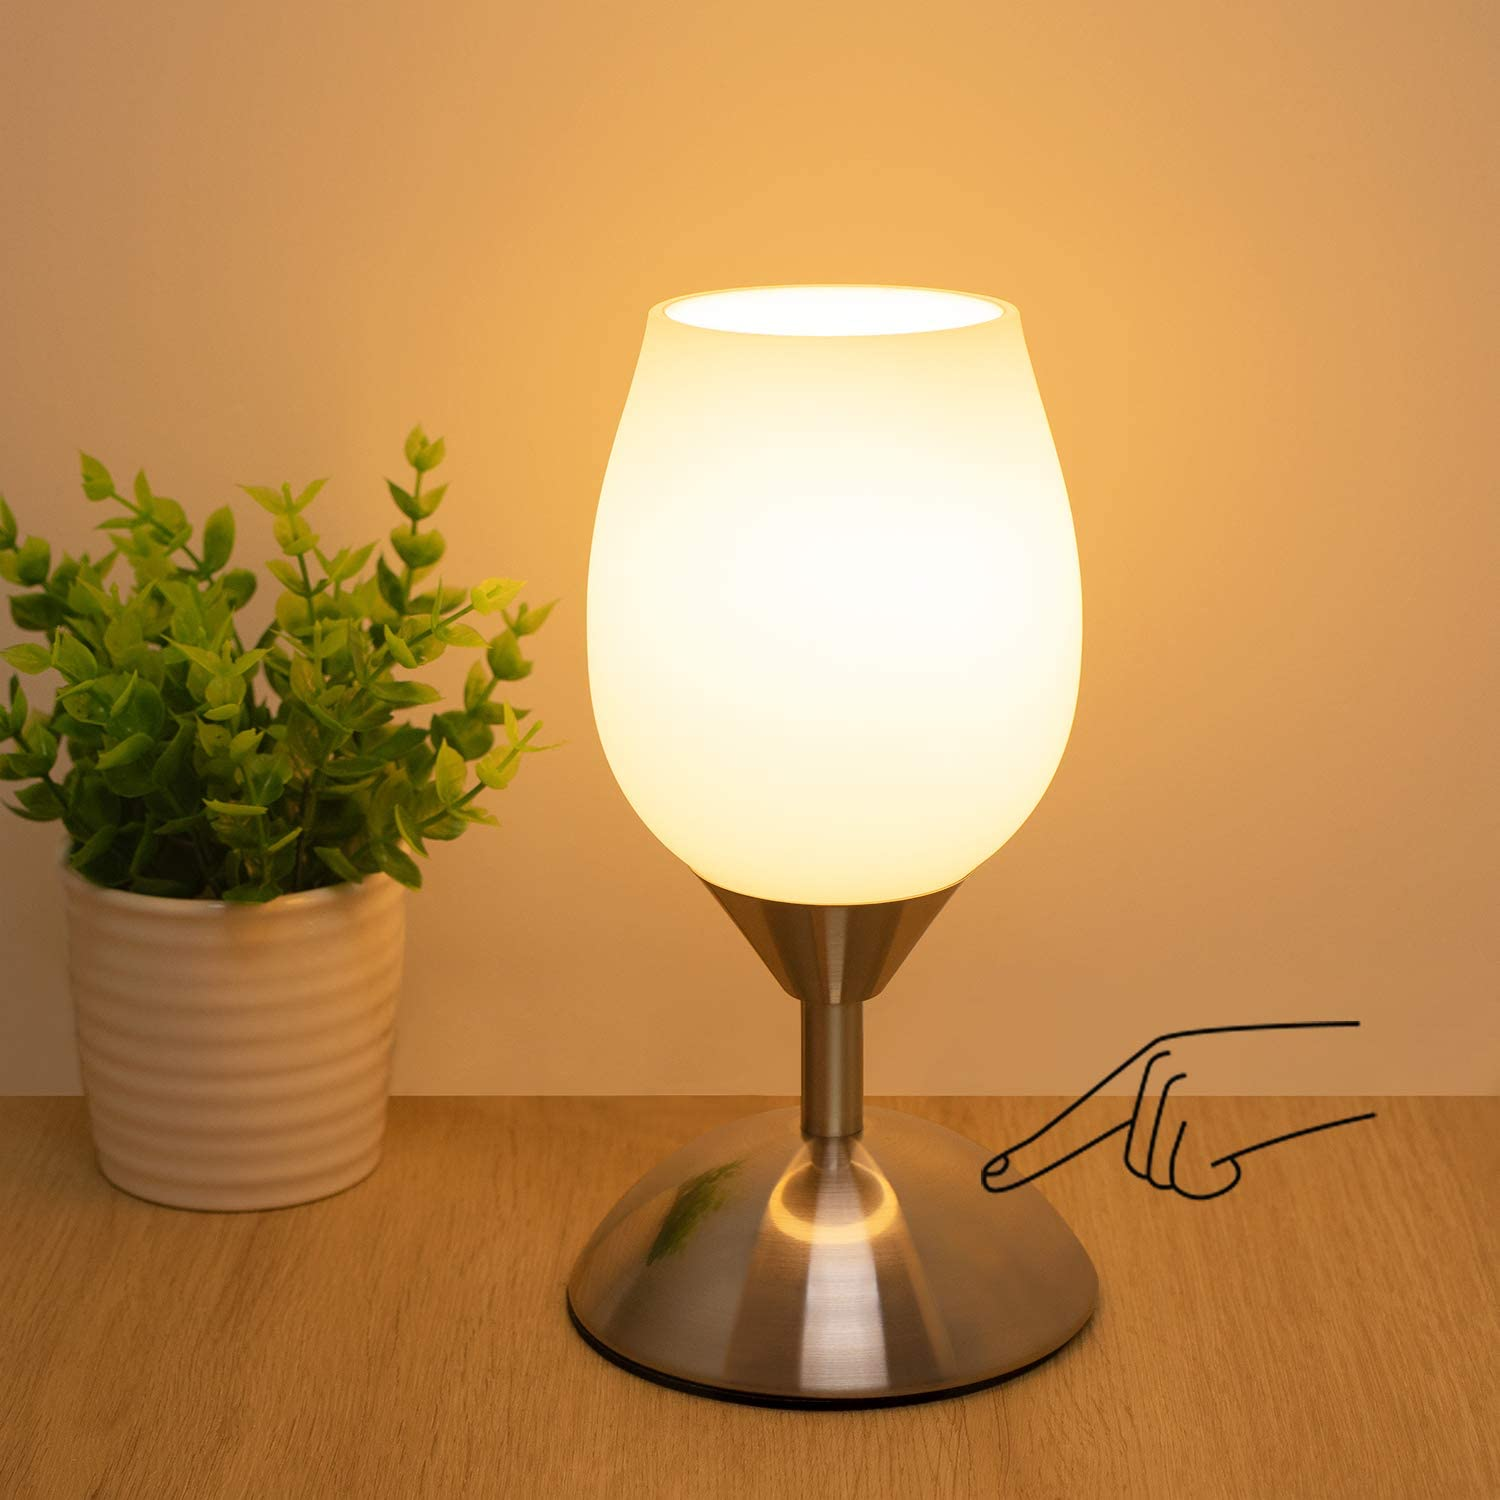 Boncoo Dimmable Touch Control Table Lamp, Small Touch Lamp with White Opal Glass Lampshade Ambient Light Bedside Little Lamp Silver Base Modern Accent Lamp for Bedroom, Living Room, E12 Bulb Included